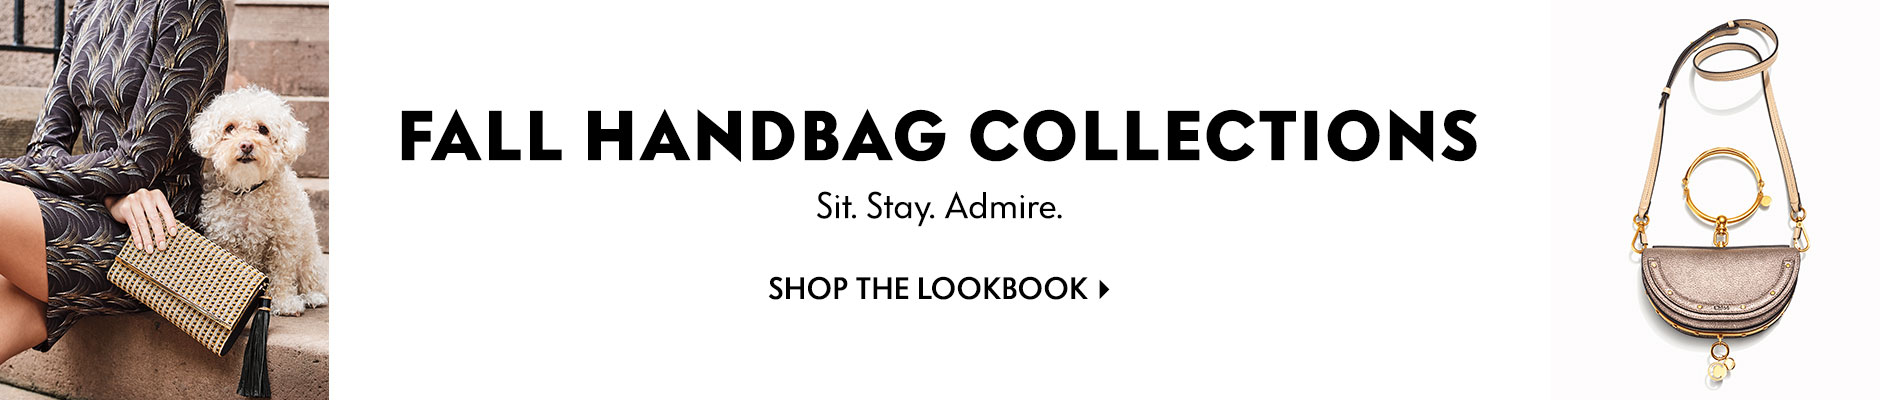 Fall Handbag Collections - Sit. Stay. Admire.